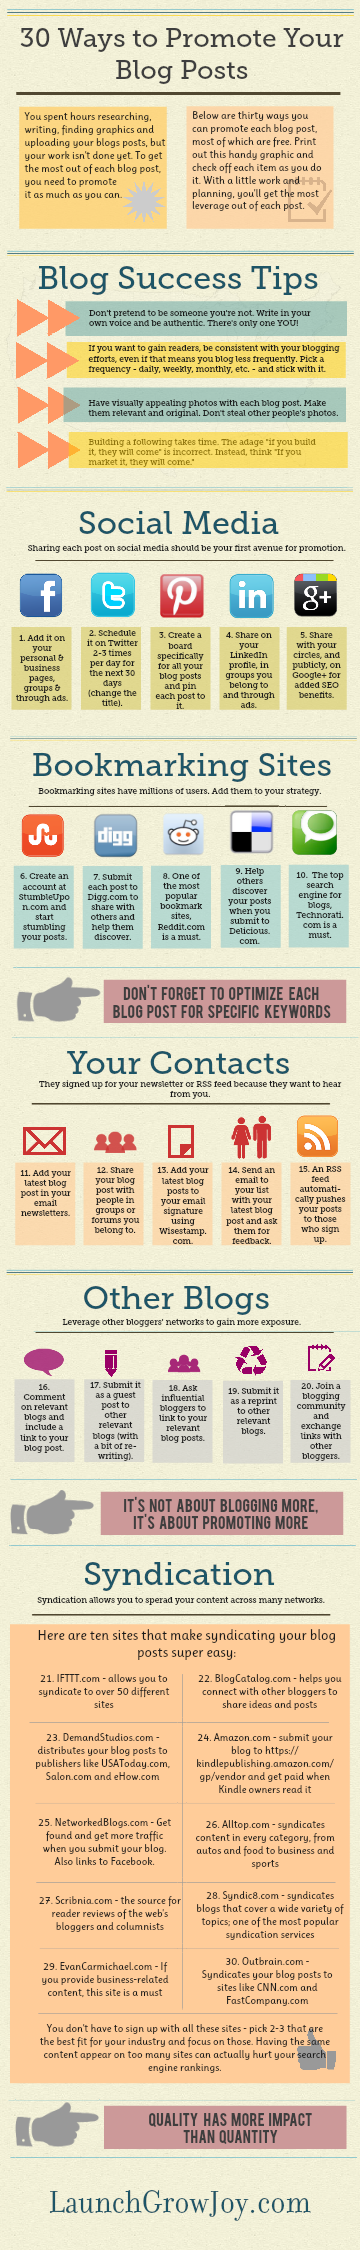 30 ways to promote your blog posts Infographic: 30 Ways to Promote Your Blog Post